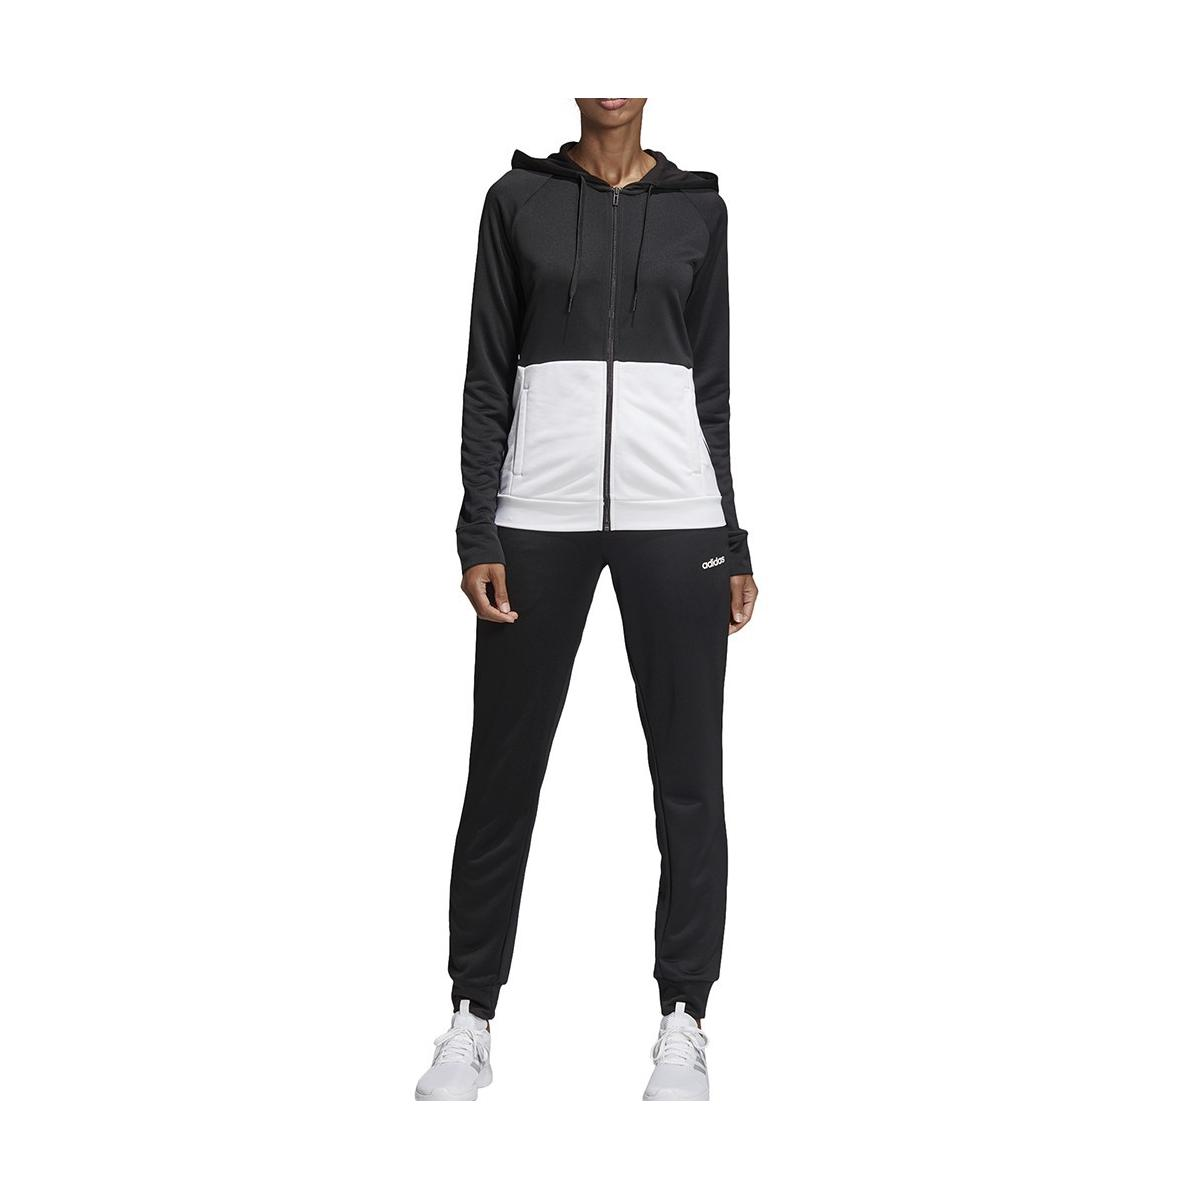 Tuta sportiva Adidas Linear French Terry da donna rif. DV2425